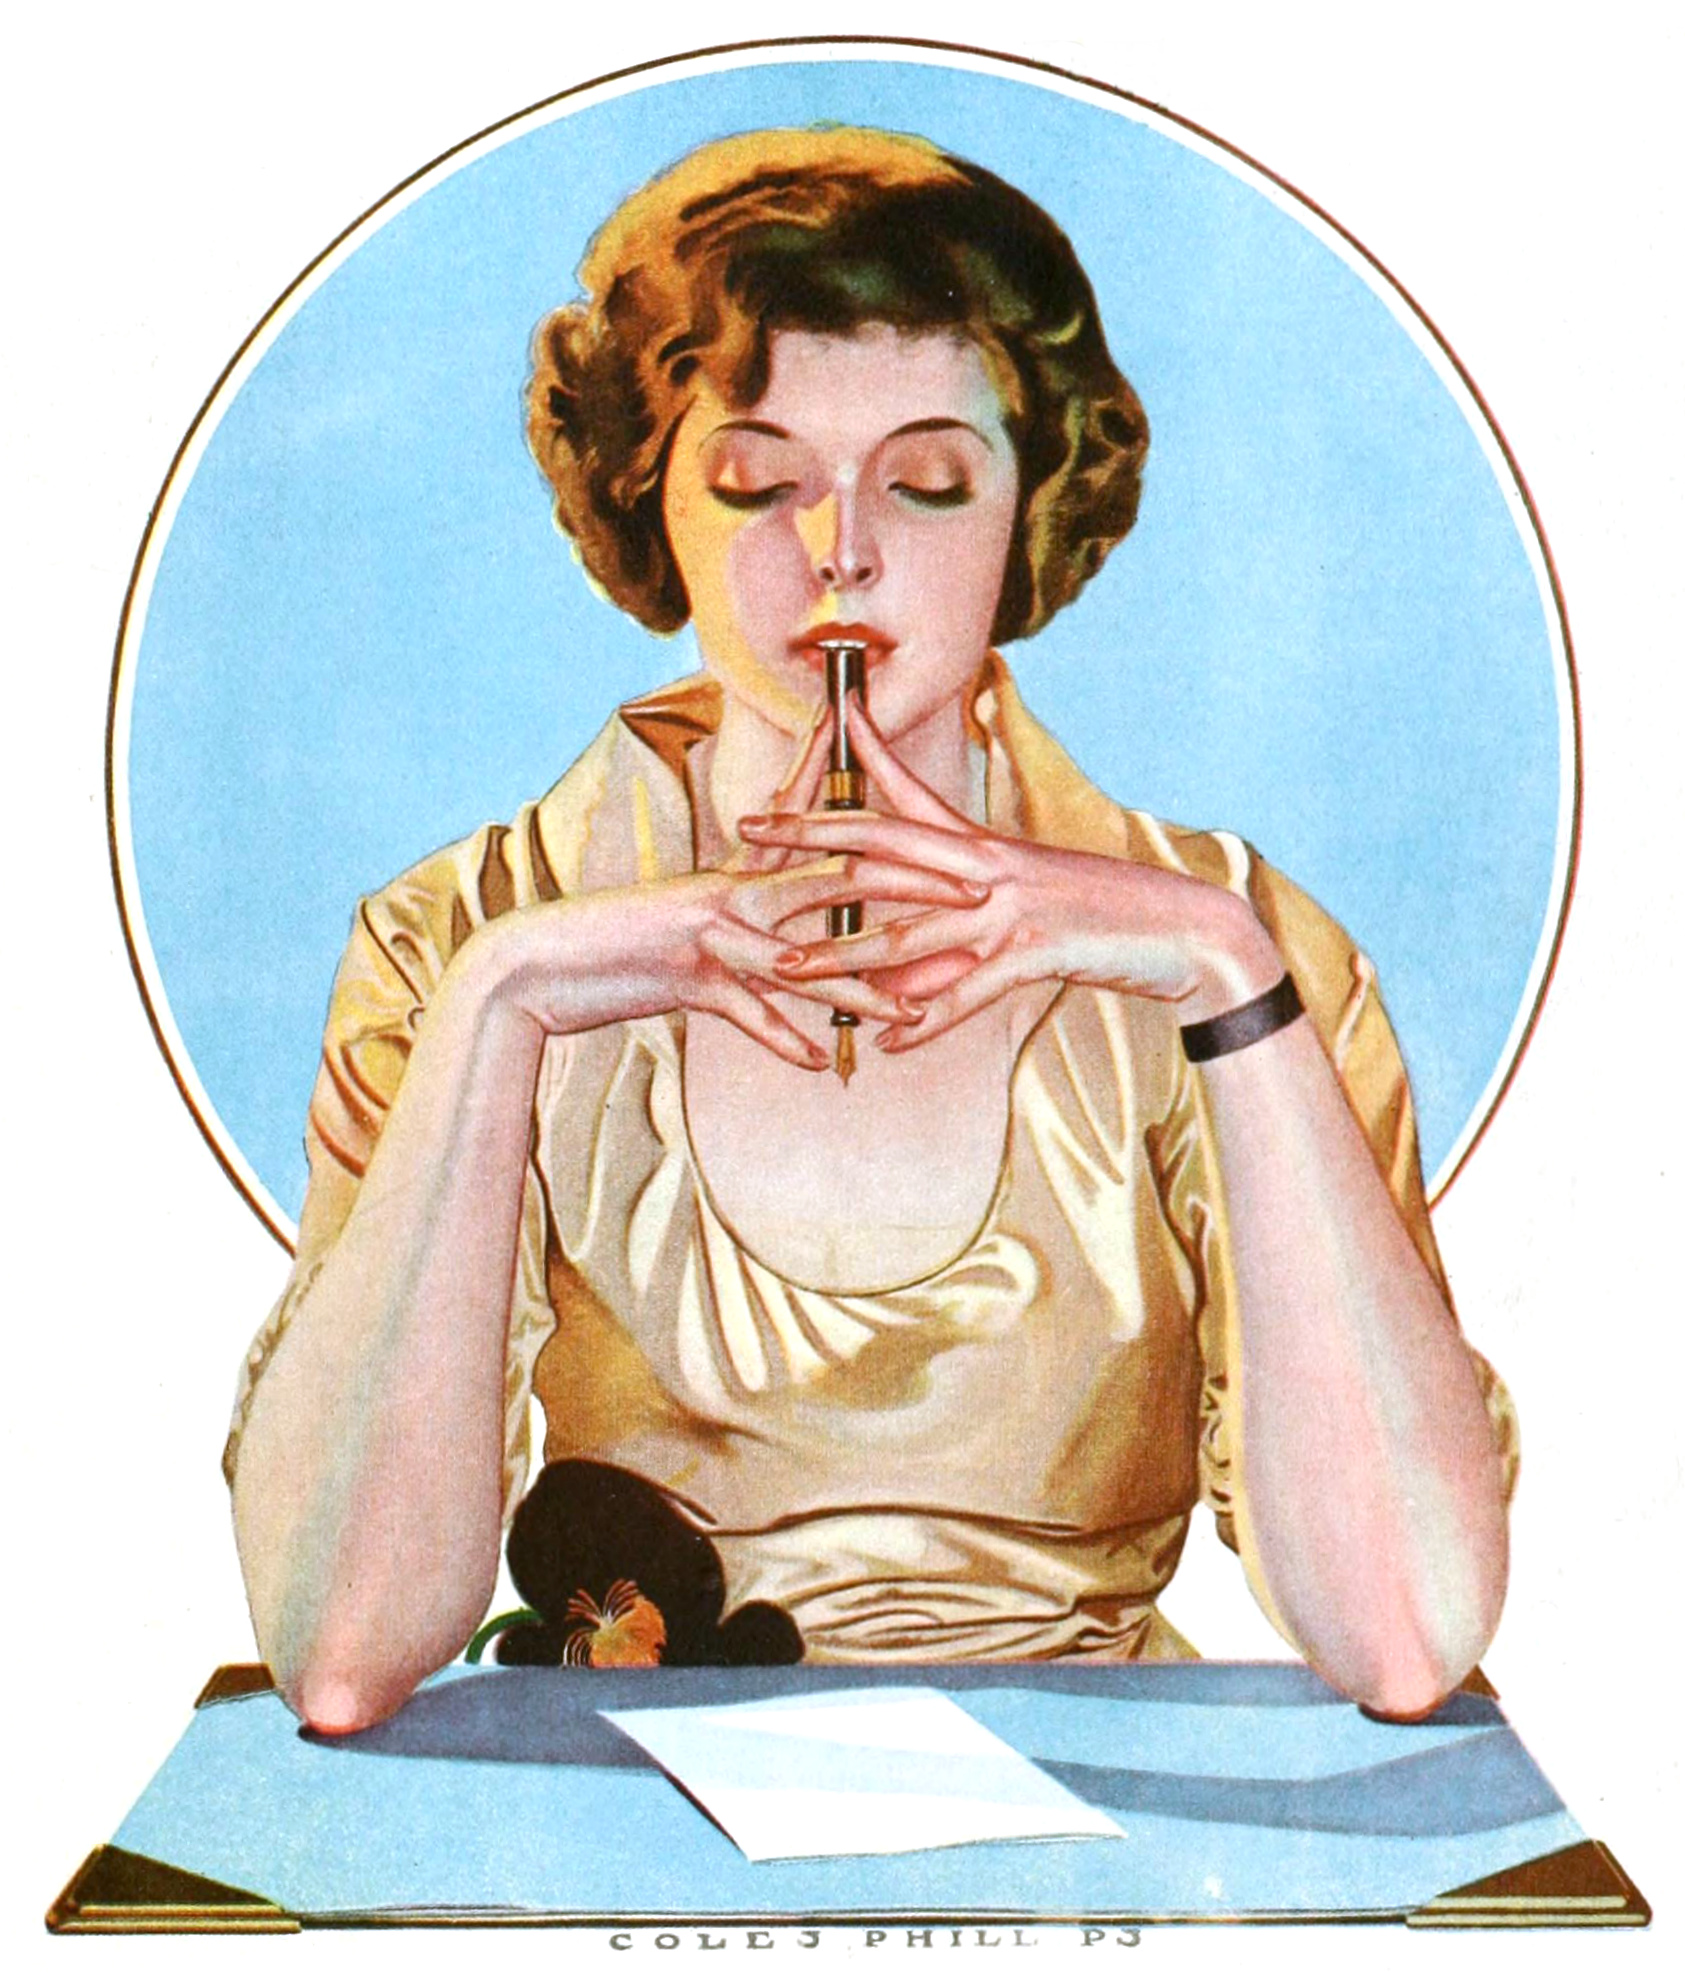 1920s advertisement of woman sitting with a sheet of paper